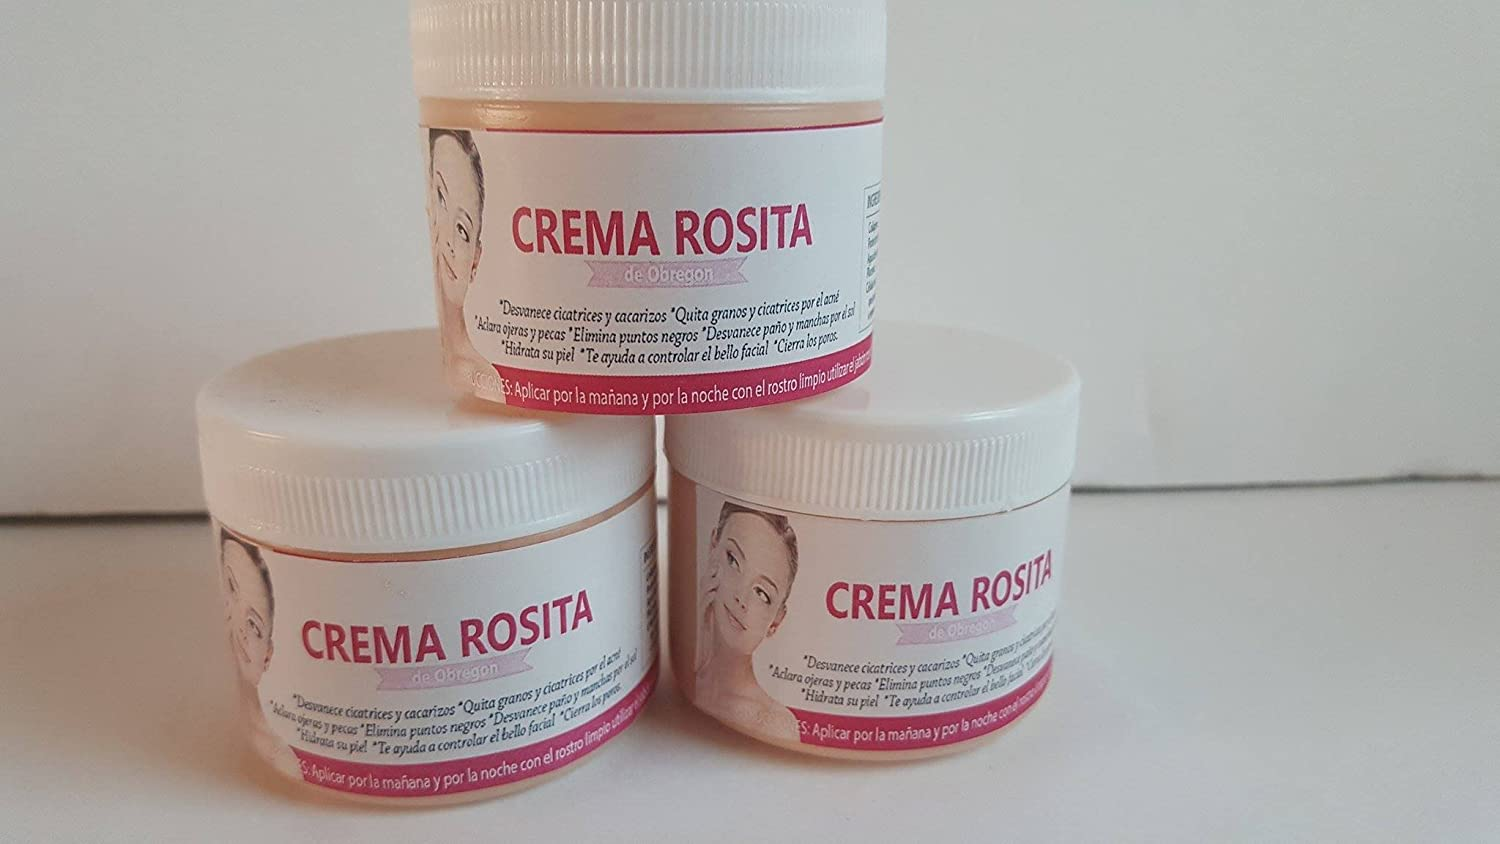 Amazon.com: Crema Rosita de Obregon: Beauty